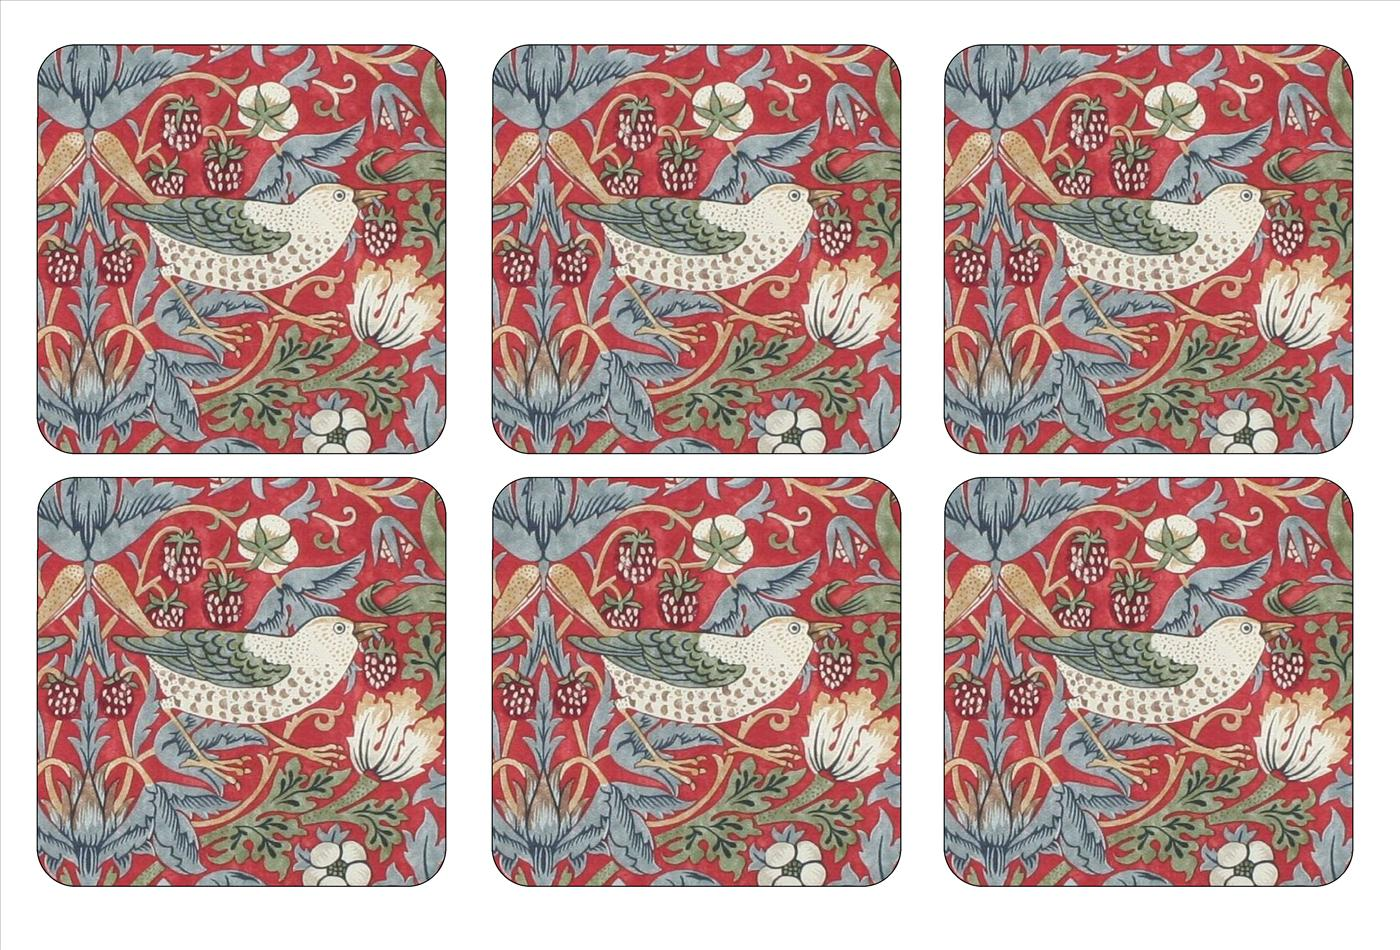 Morris and Co for Pimpernel Strawberry Thief Red Coasters Set of 6 image number 0